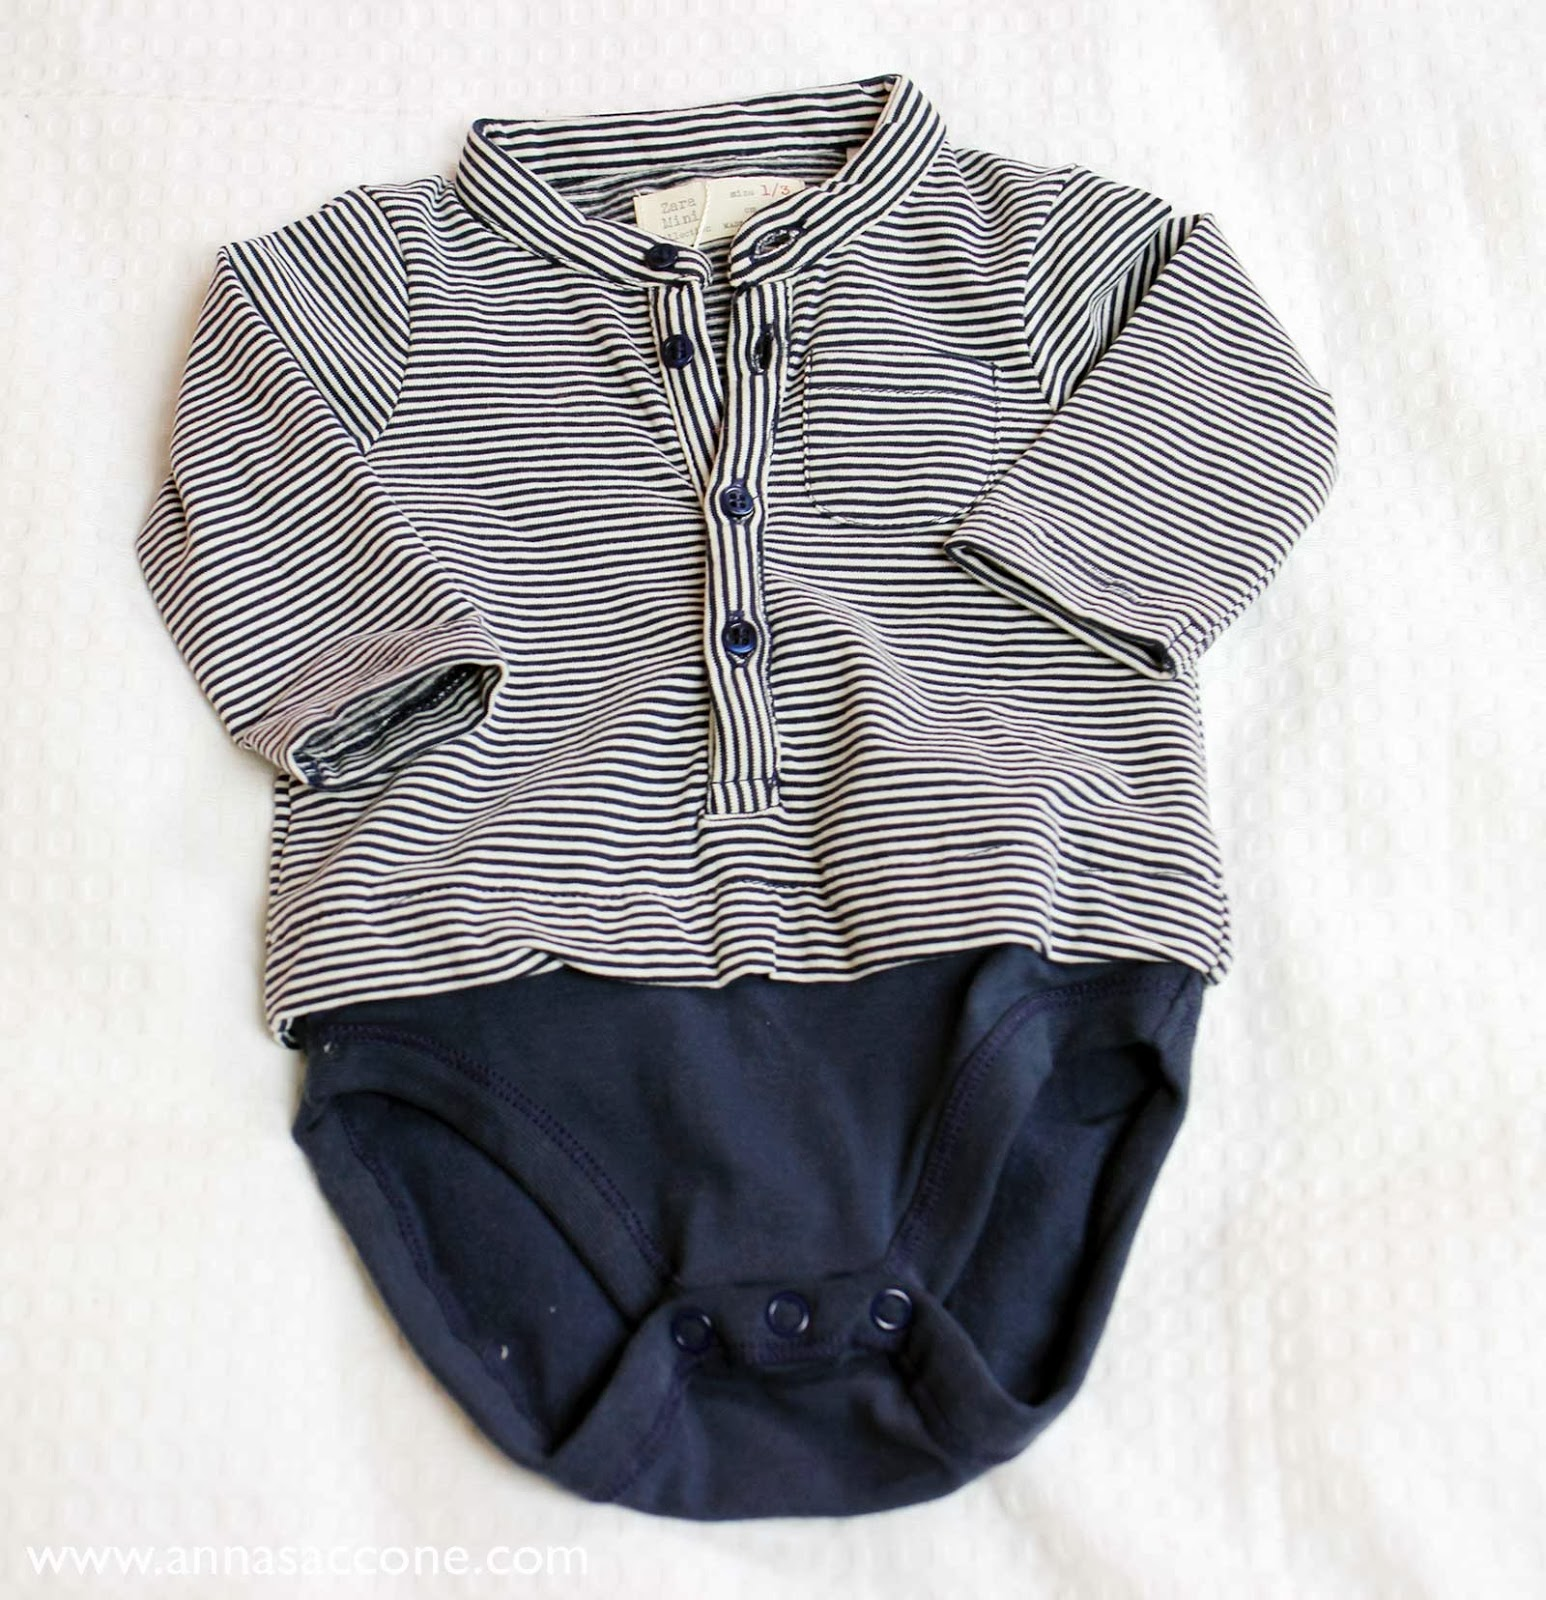 Find great deals on eBay for zara baby clothes. Shop with confidence.